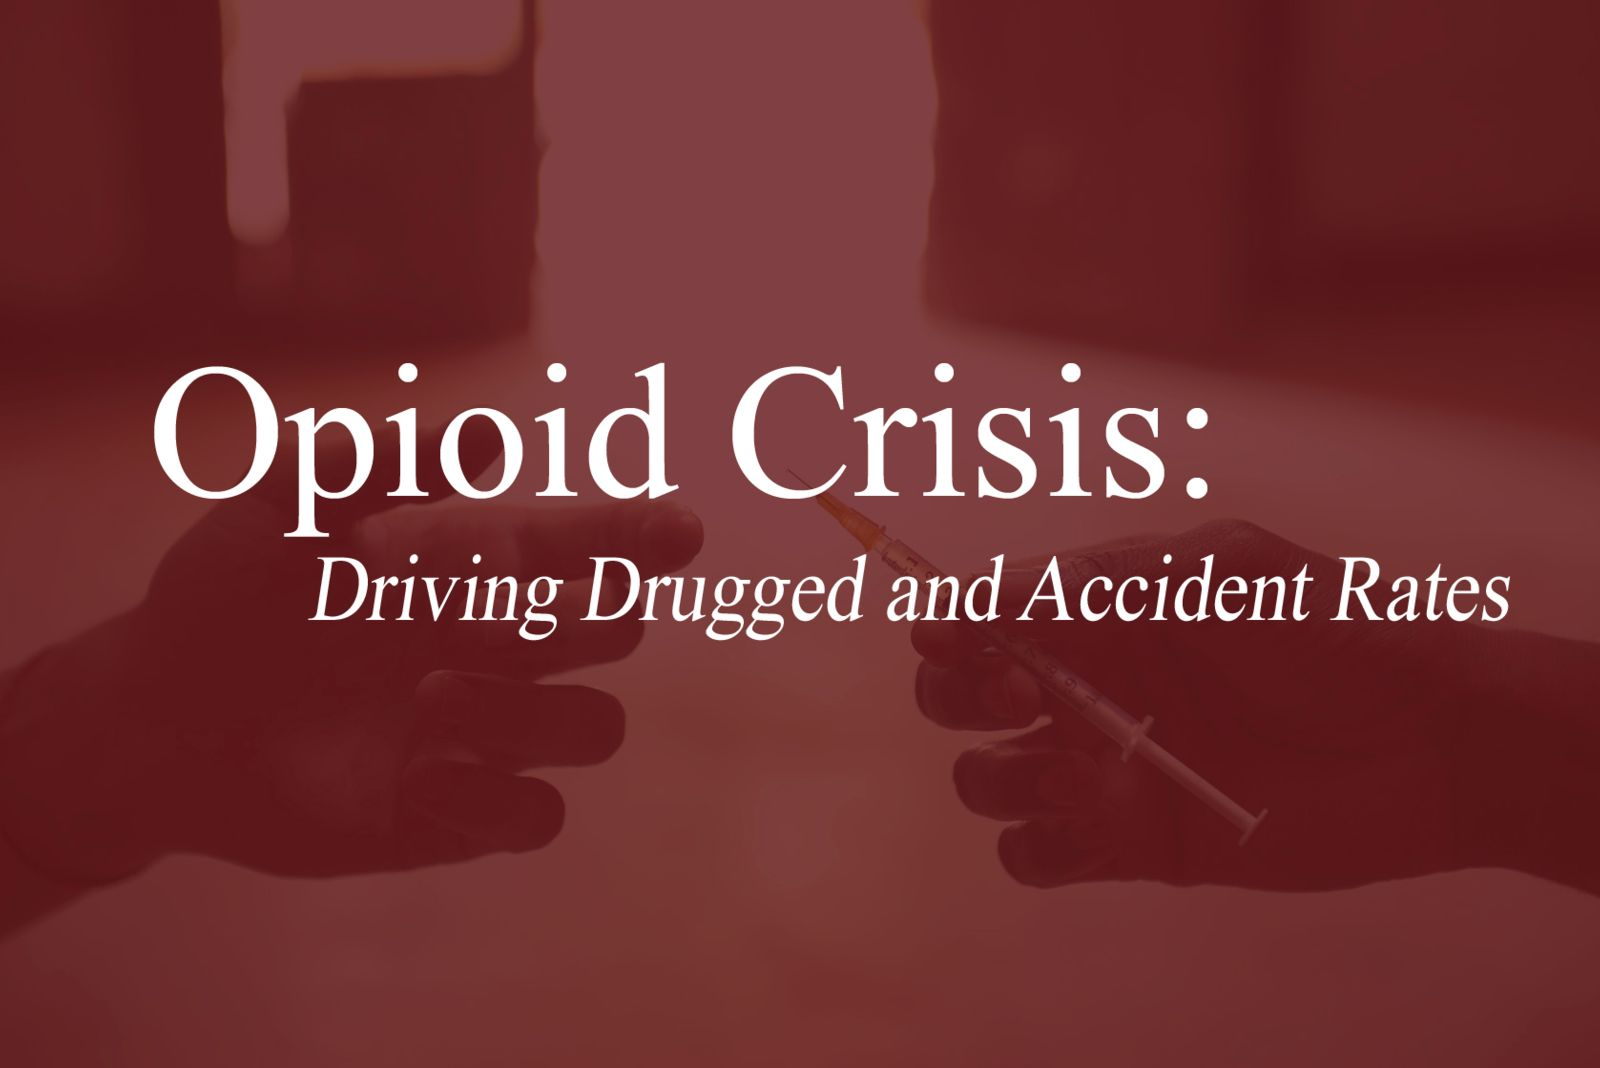 opioid driving influence accident rate